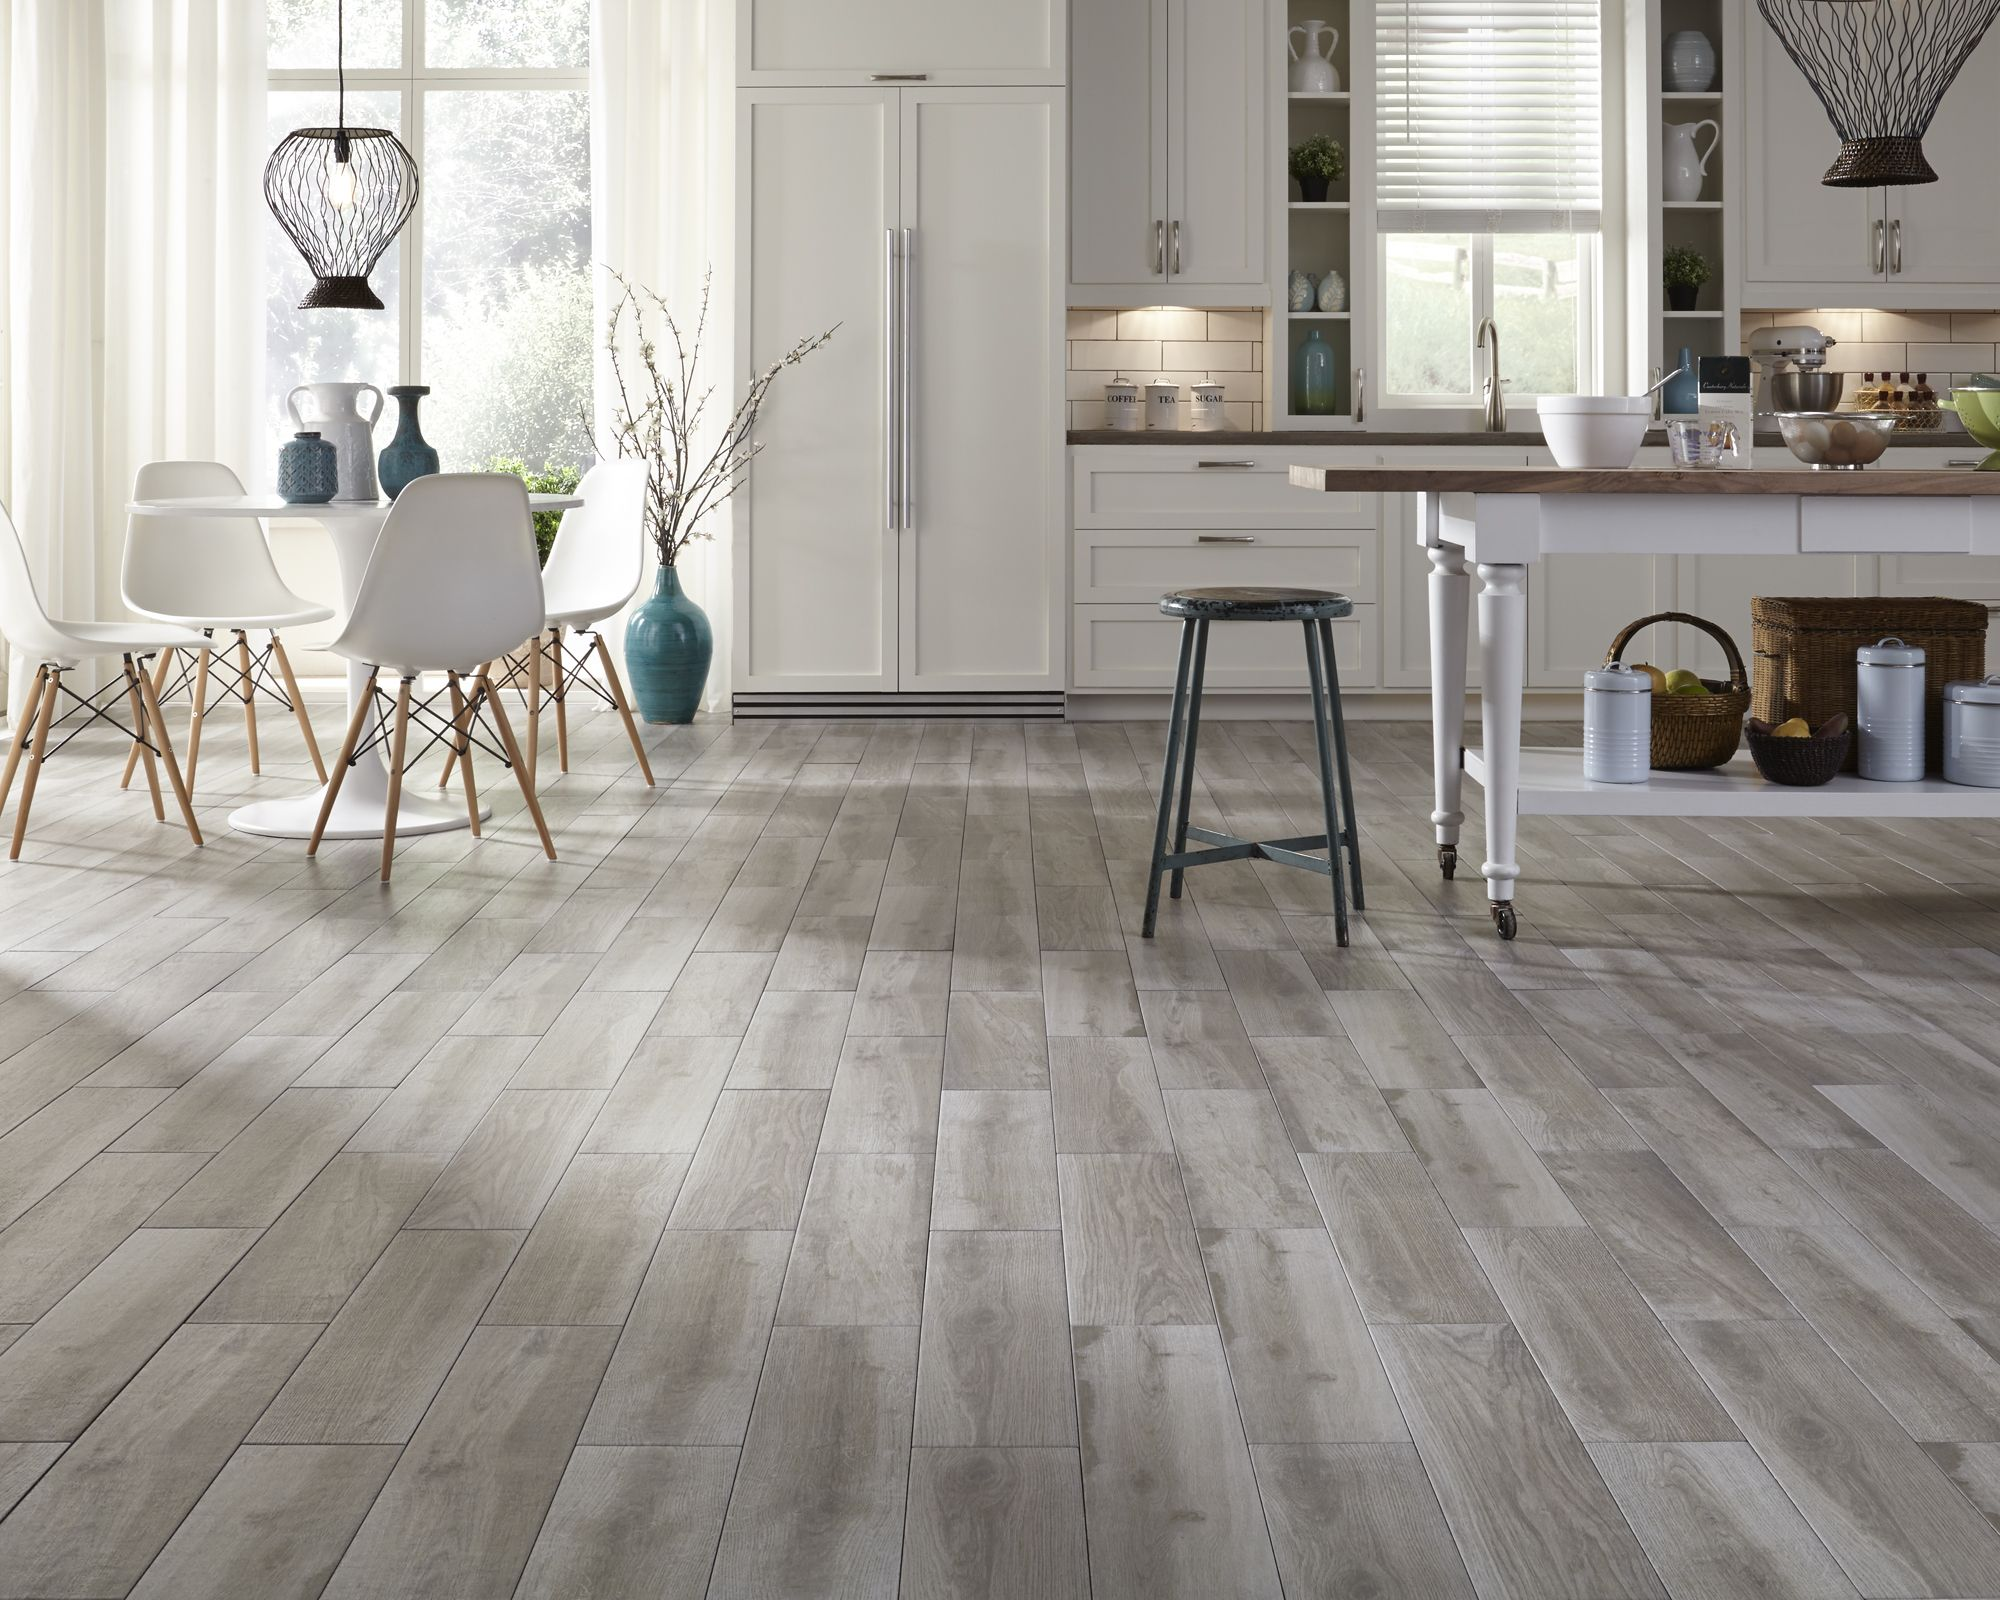 Interested in woodlook tile? Check out Himba Gray